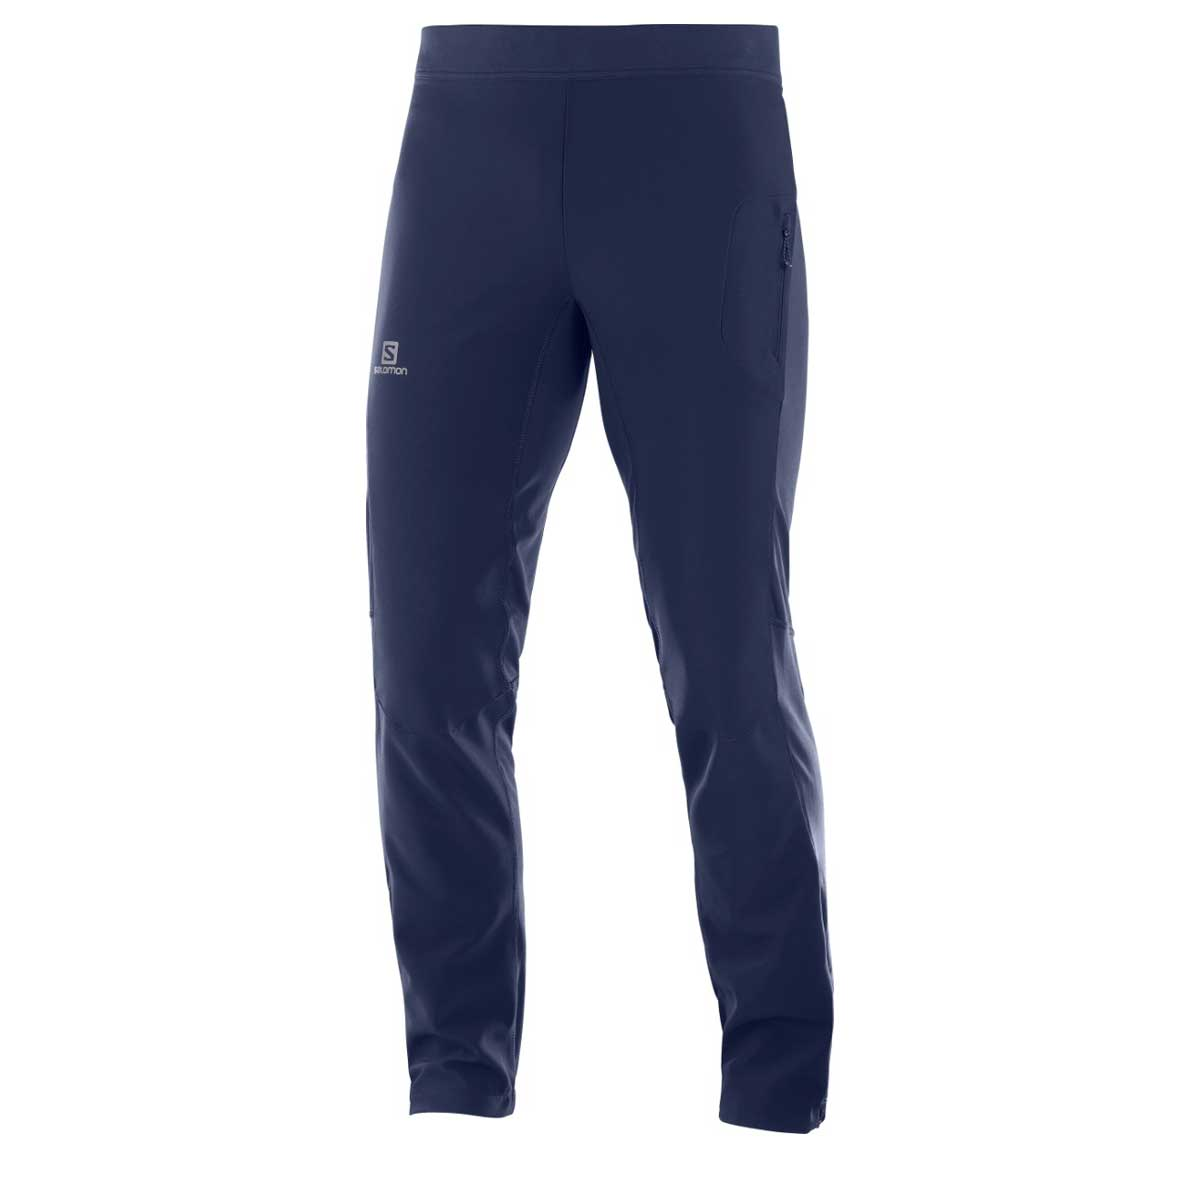 Salomon Men's RS Warm Softshell Pant in Night Sky